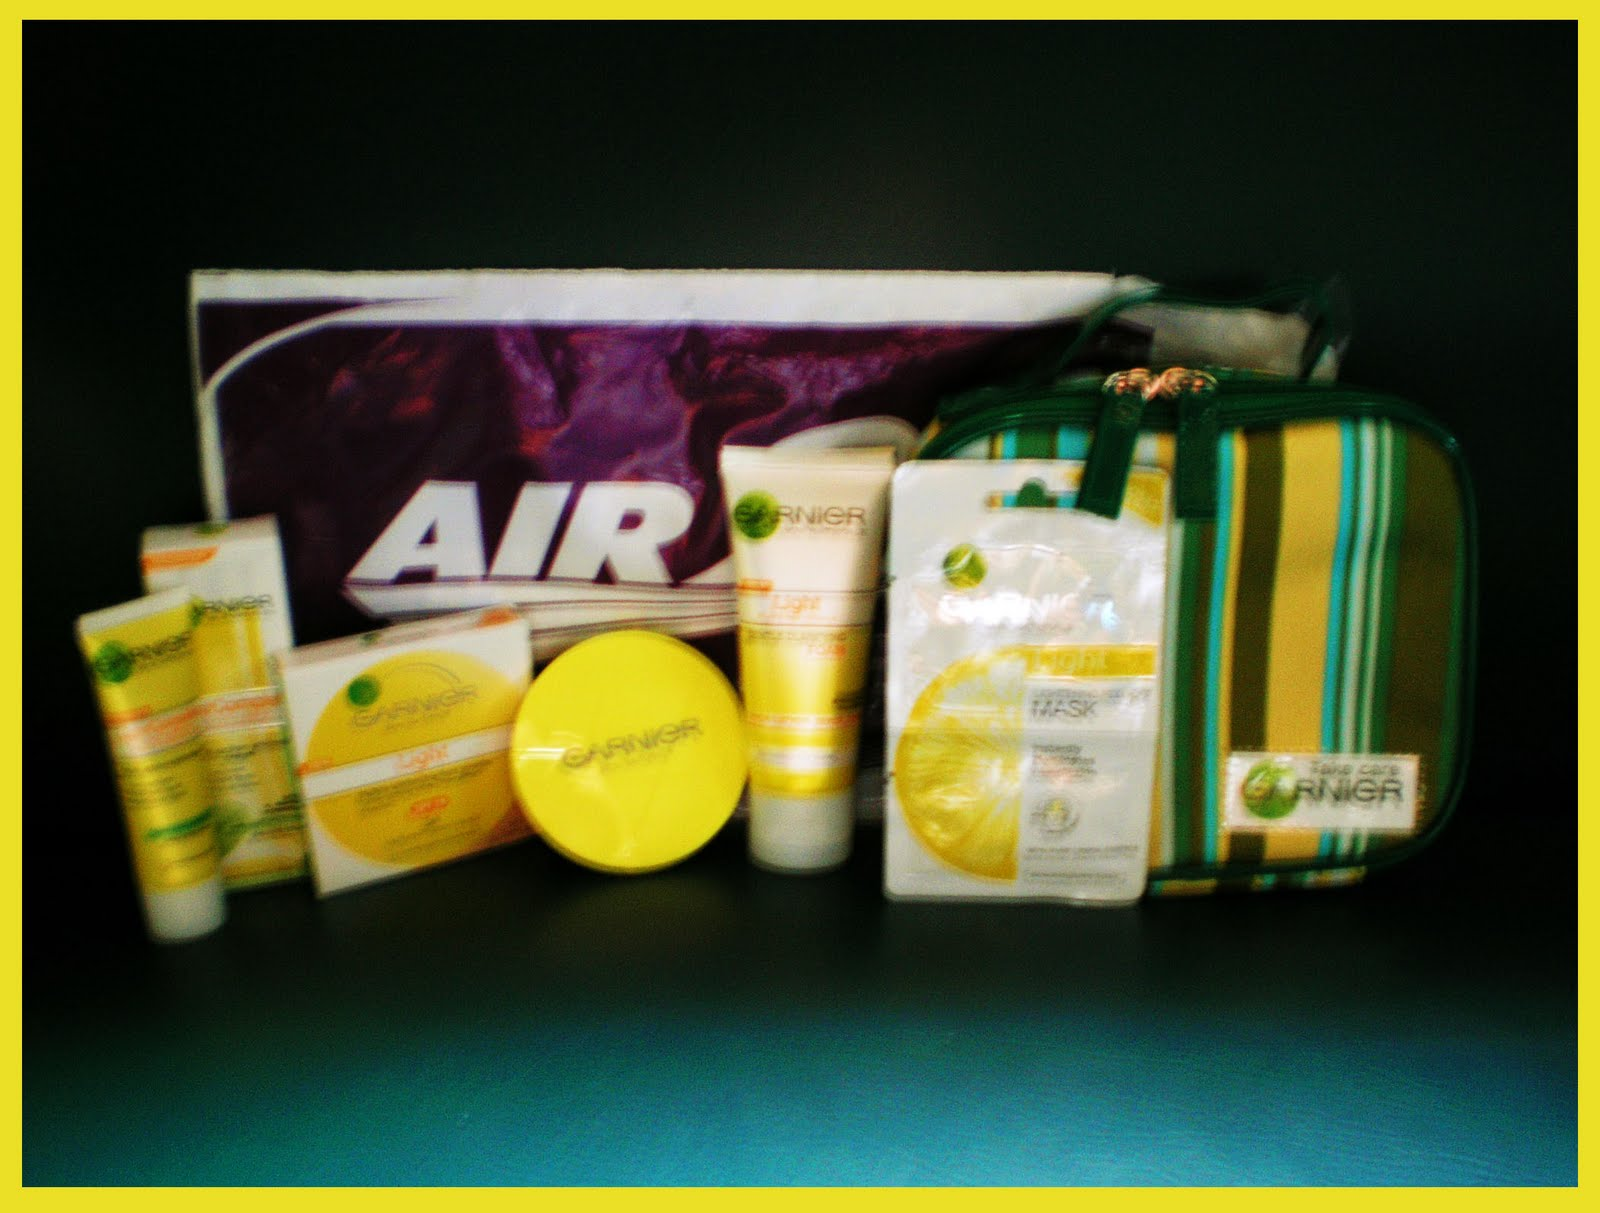 clarifying foam, Contest Promos and Winnings, face powder, garnier, multi action whitening cream, peel-off masks, prize, pouch, air 21